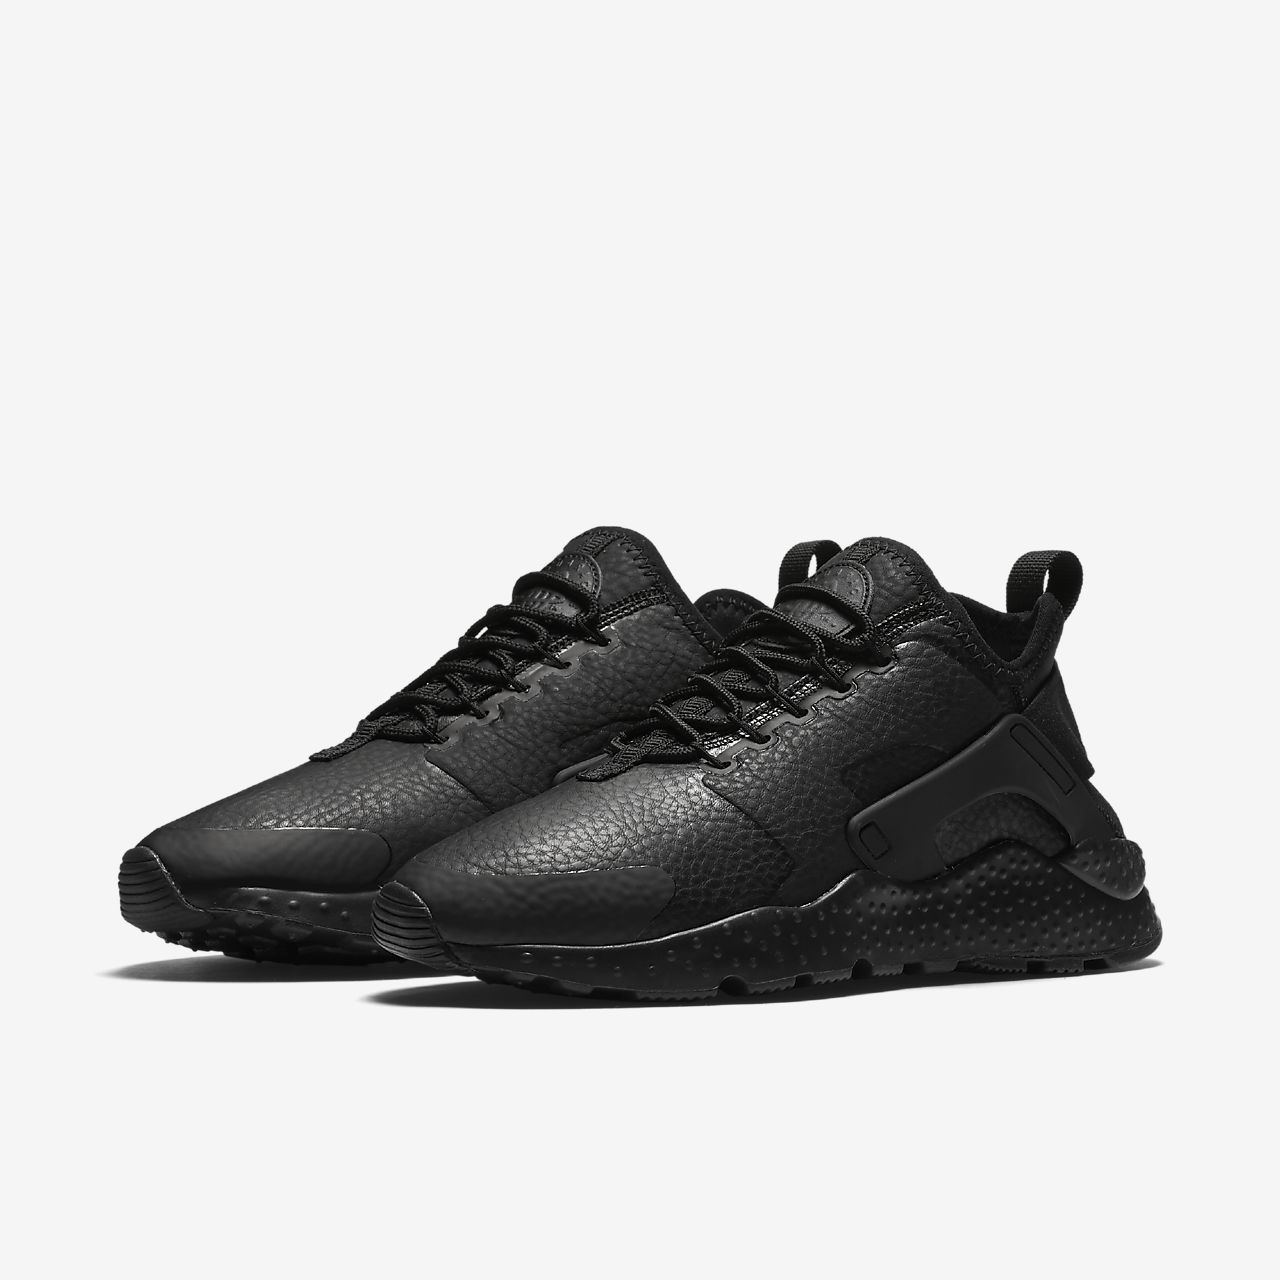 mens nike air huarache ultra se premium running shoes. Black Bedroom Furniture Sets. Home Design Ideas